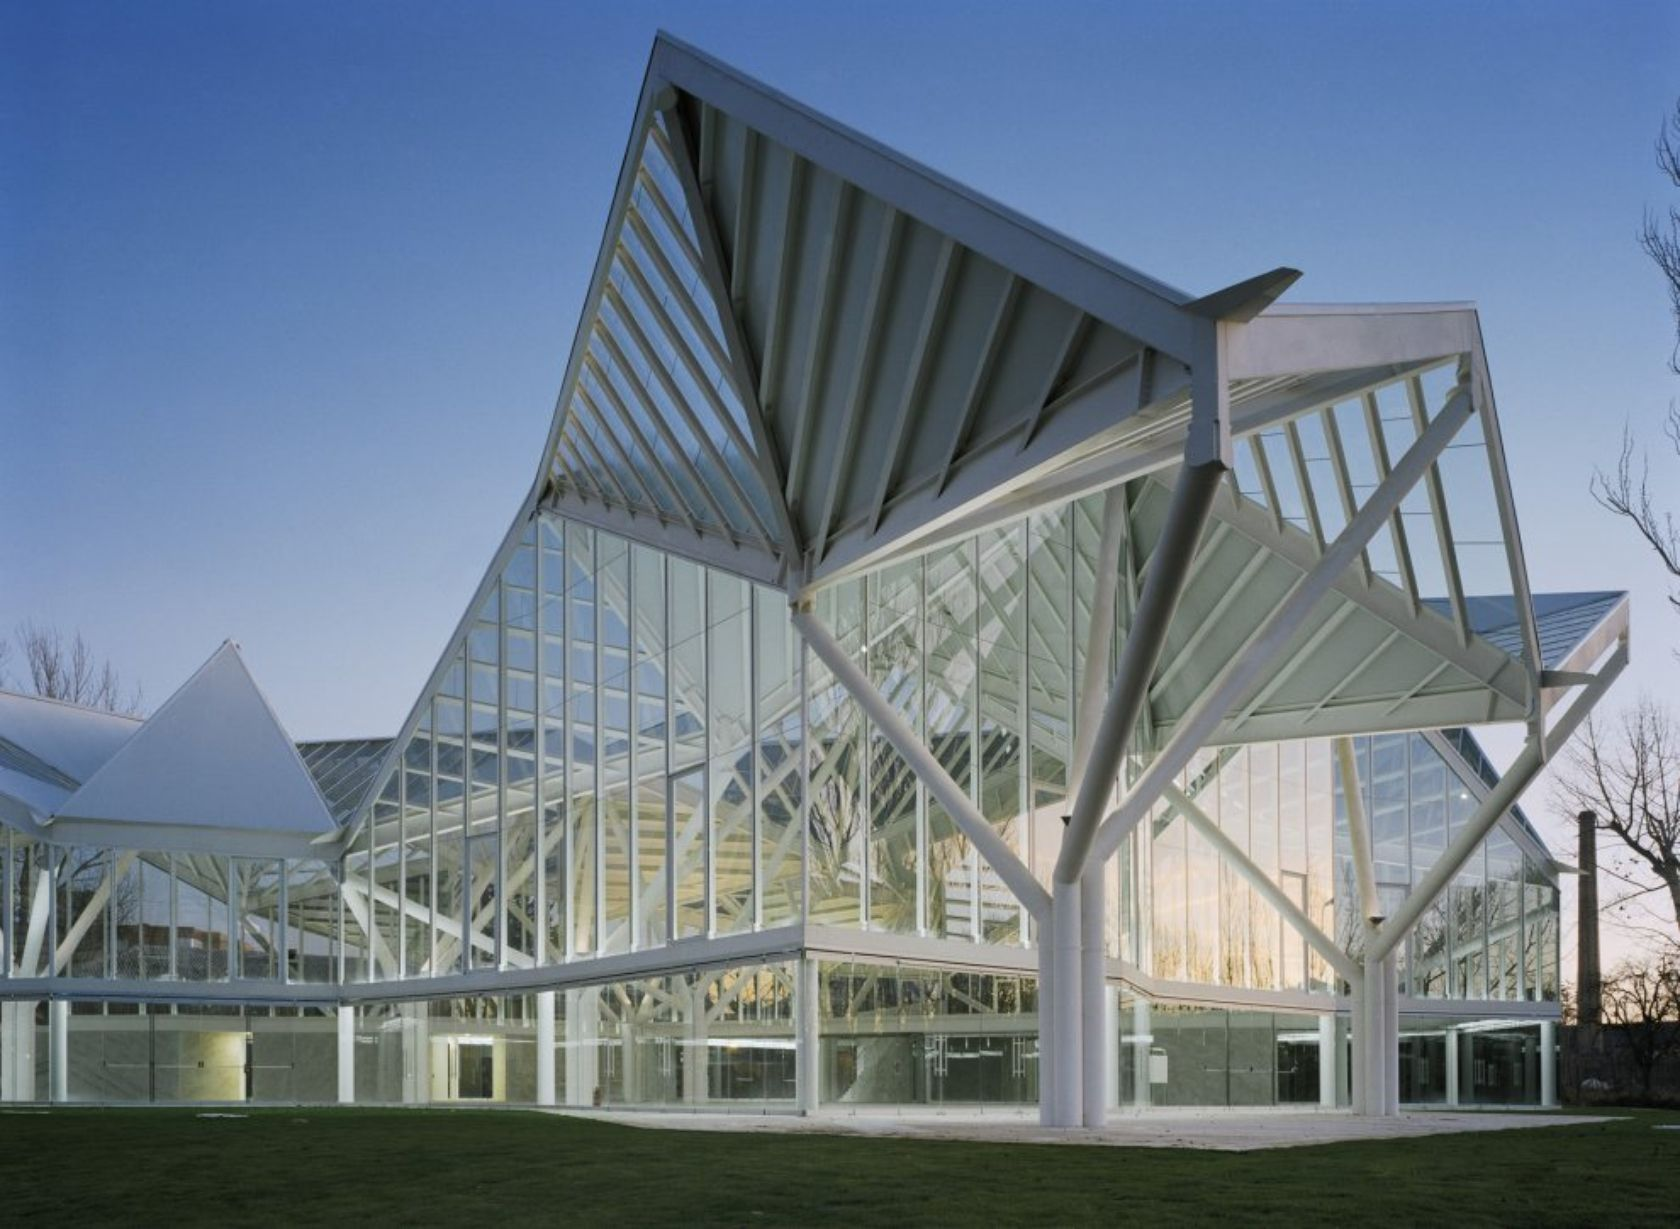 Folding Architecture: Top 10 Origami-Inspired Buildings